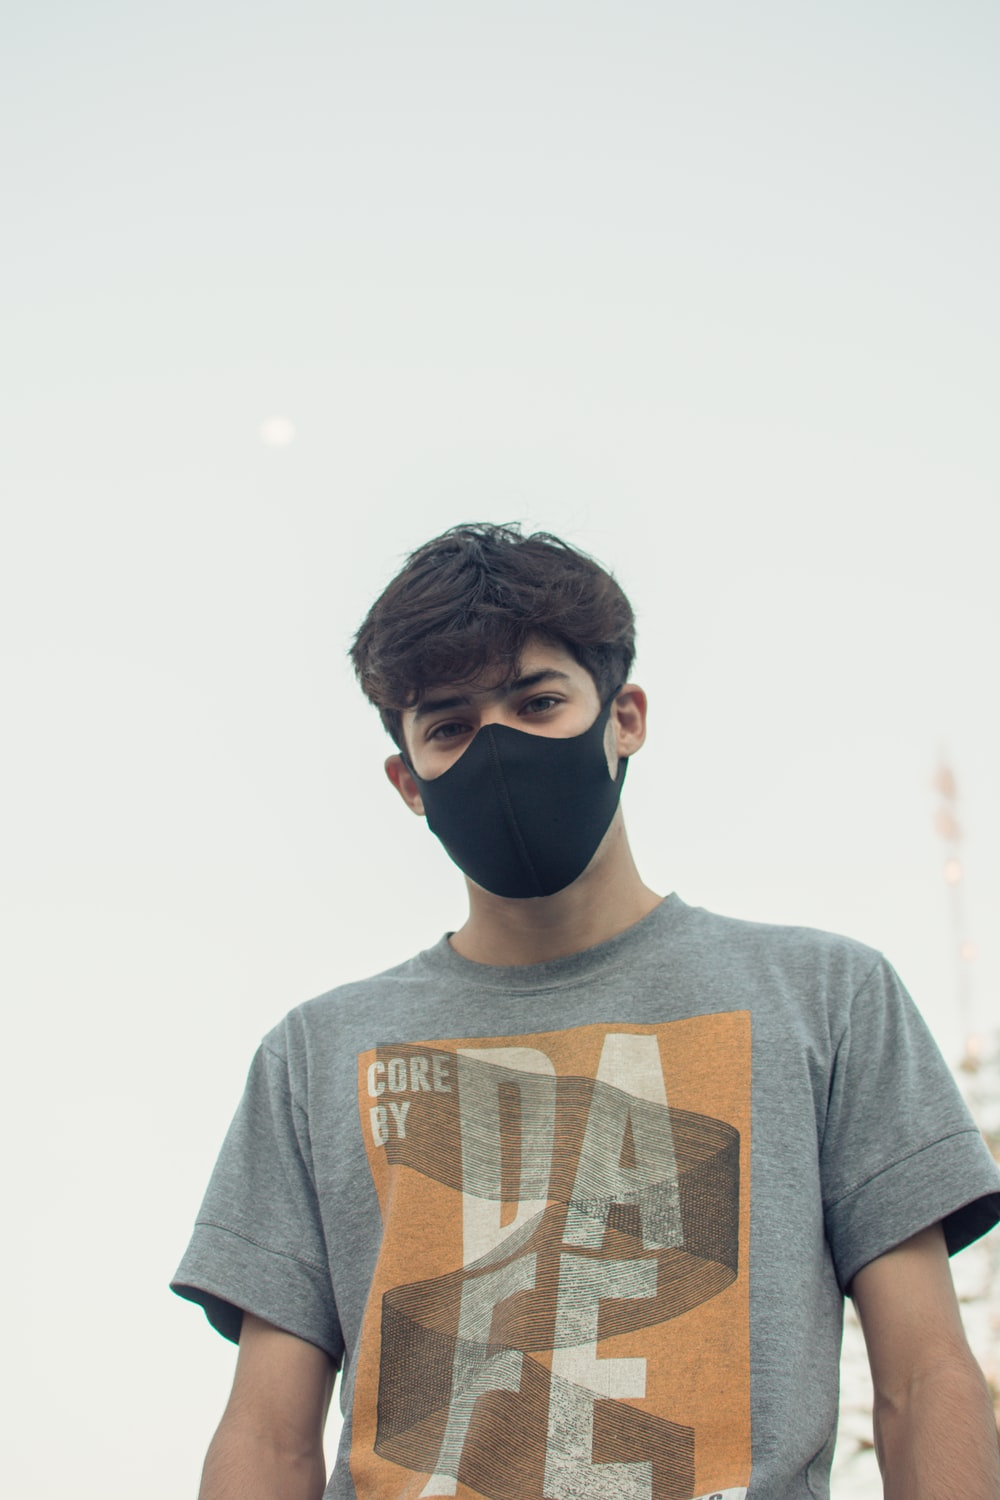 man in gray crew neck t-shirt wearing black goggles